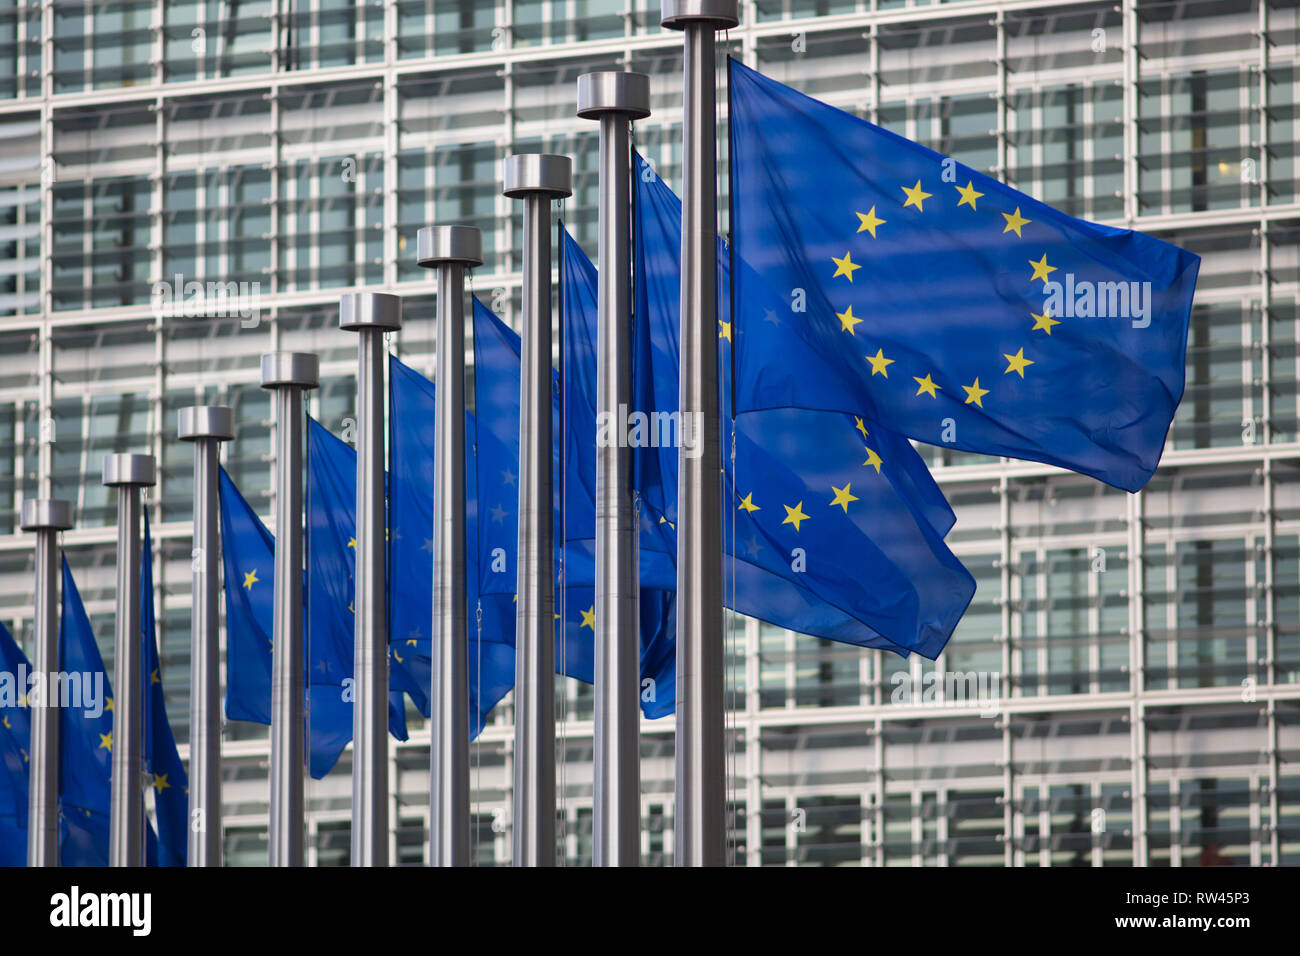 European Union flags in front of Berlaymont building - Stock Image